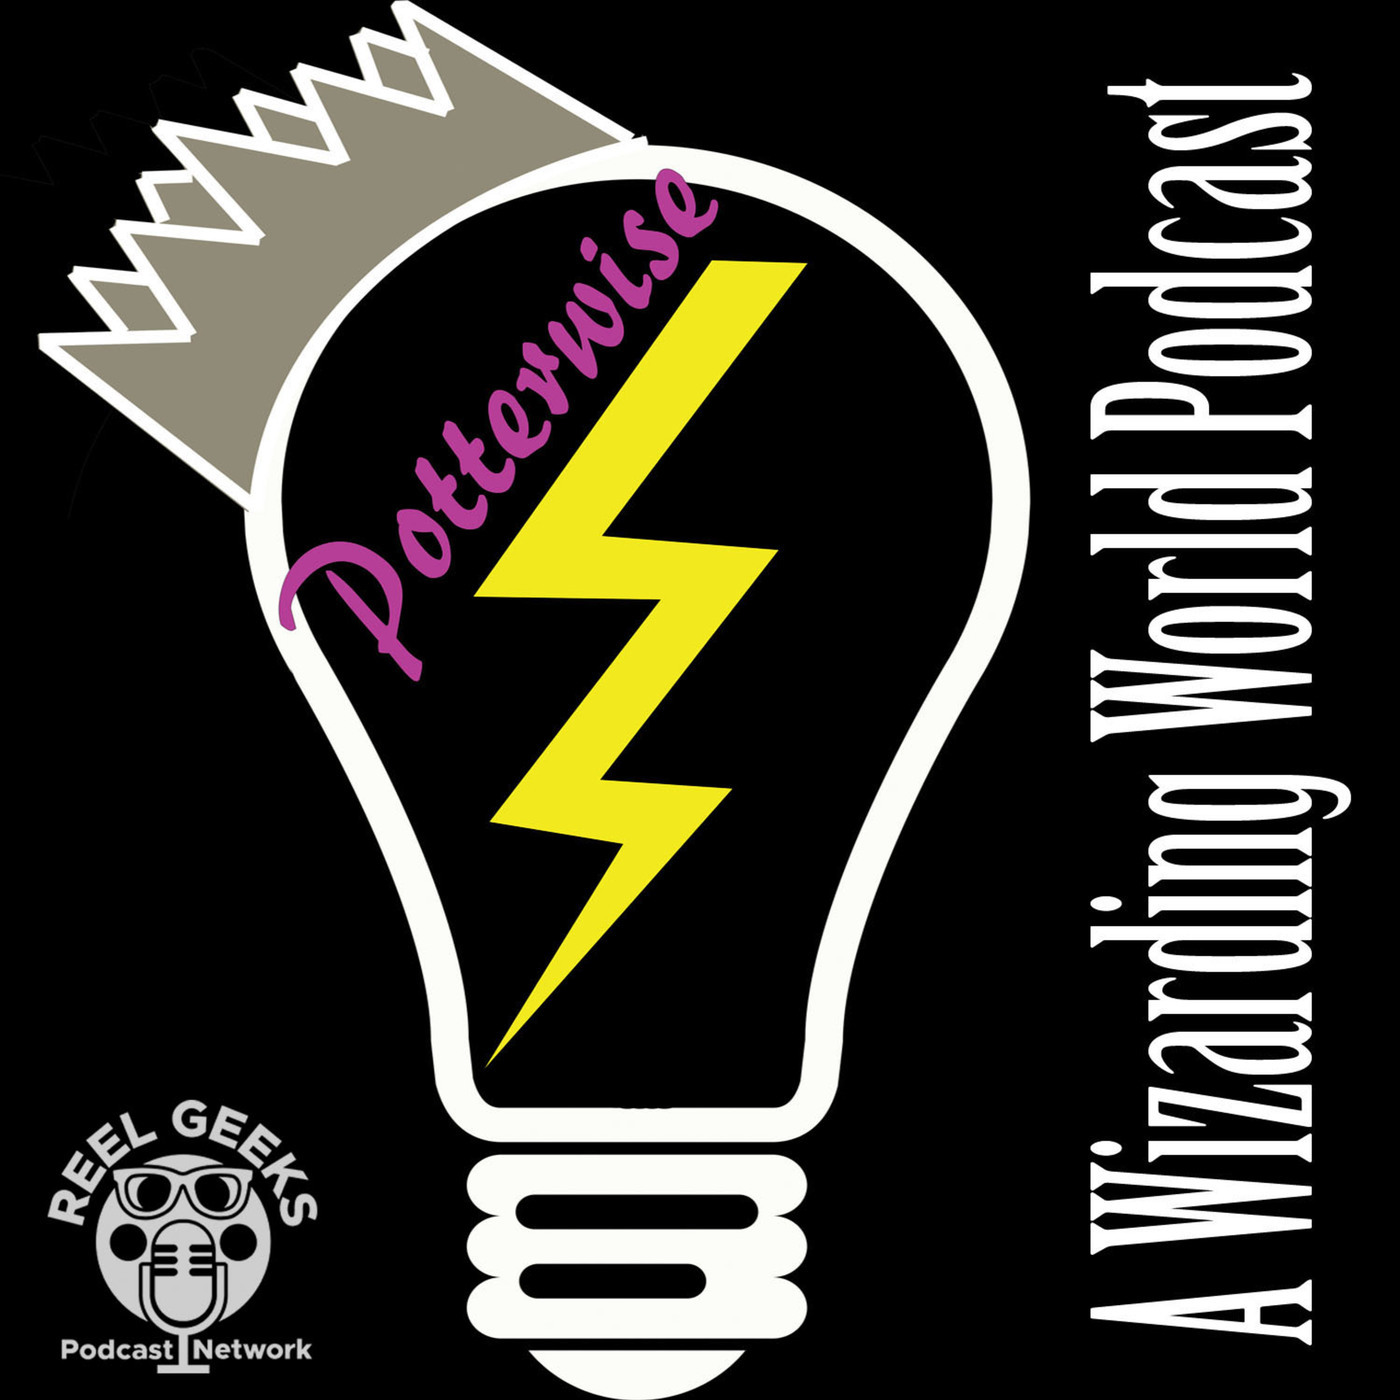 Potterwise: A Wizarding World Podcast - Jennifer and Brandi have annoyed everyone in their lives with all their Harry Potter talk, so they have decided to branch out and annoy...uhhh ENTERTAIN... the masses with their passionate but somewhat wacky discussions of all things Wizarding!